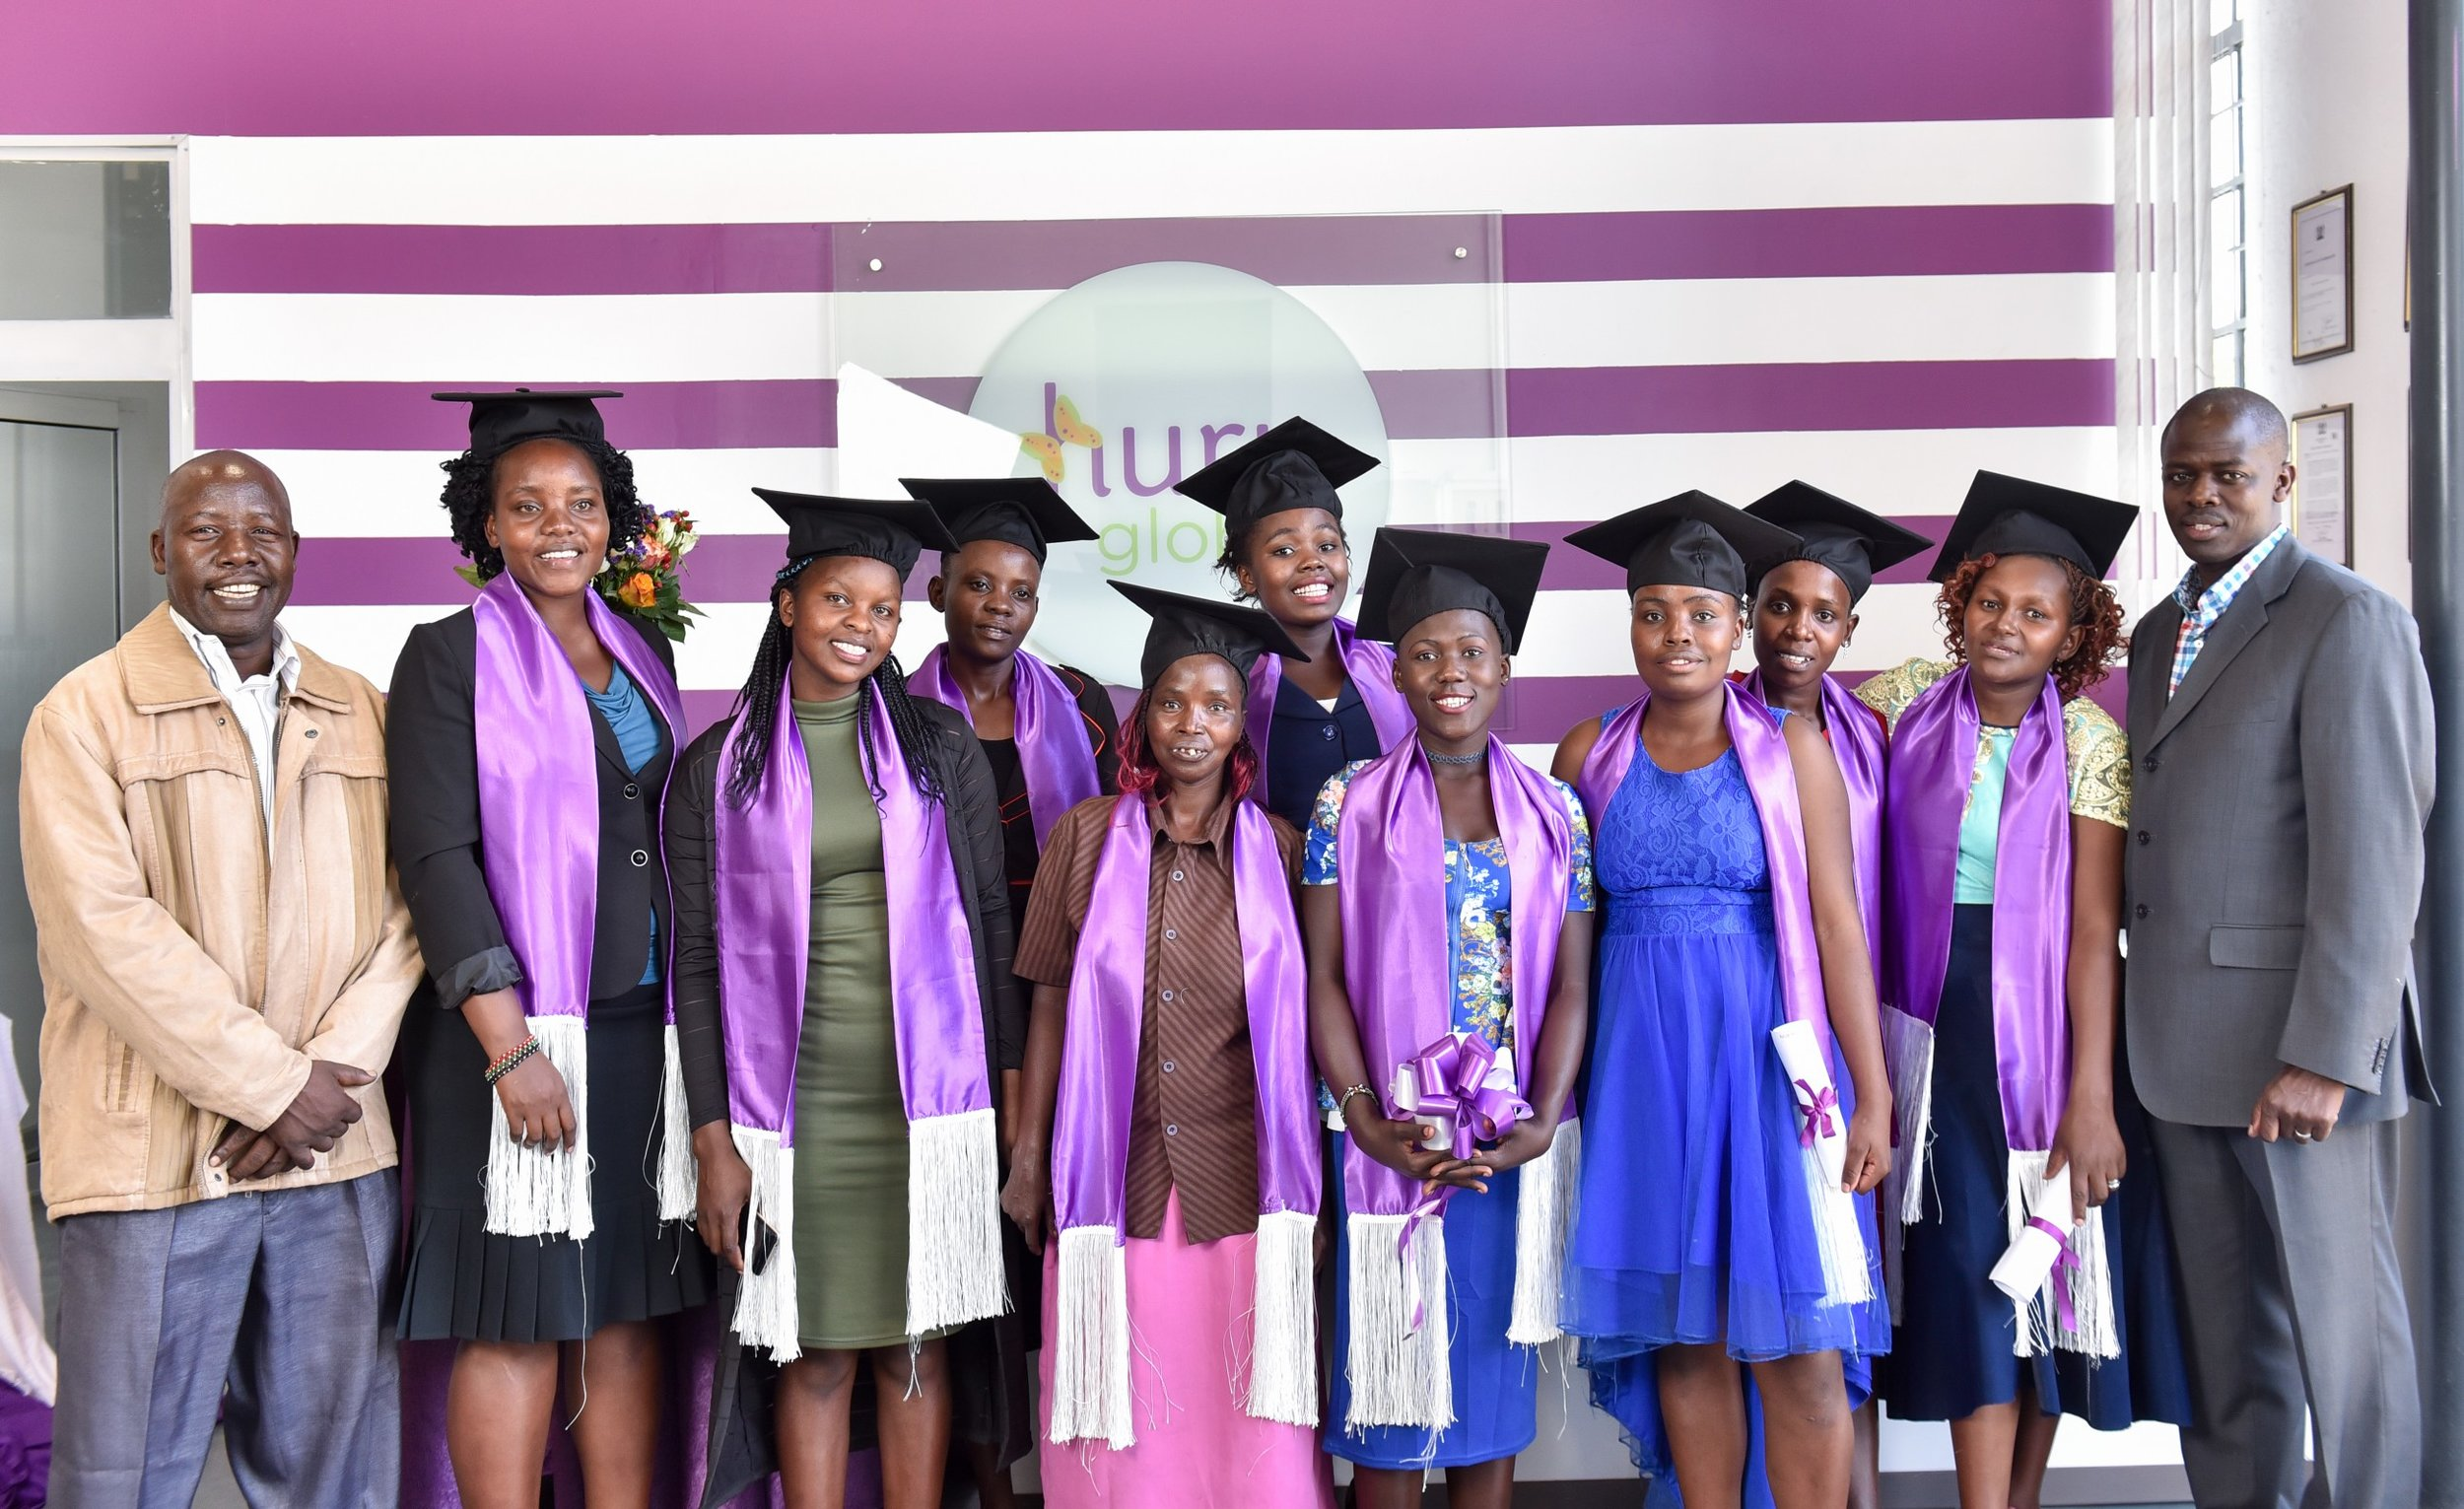 11 young women (shown here) complete Huru International's first Skills Transfer Program